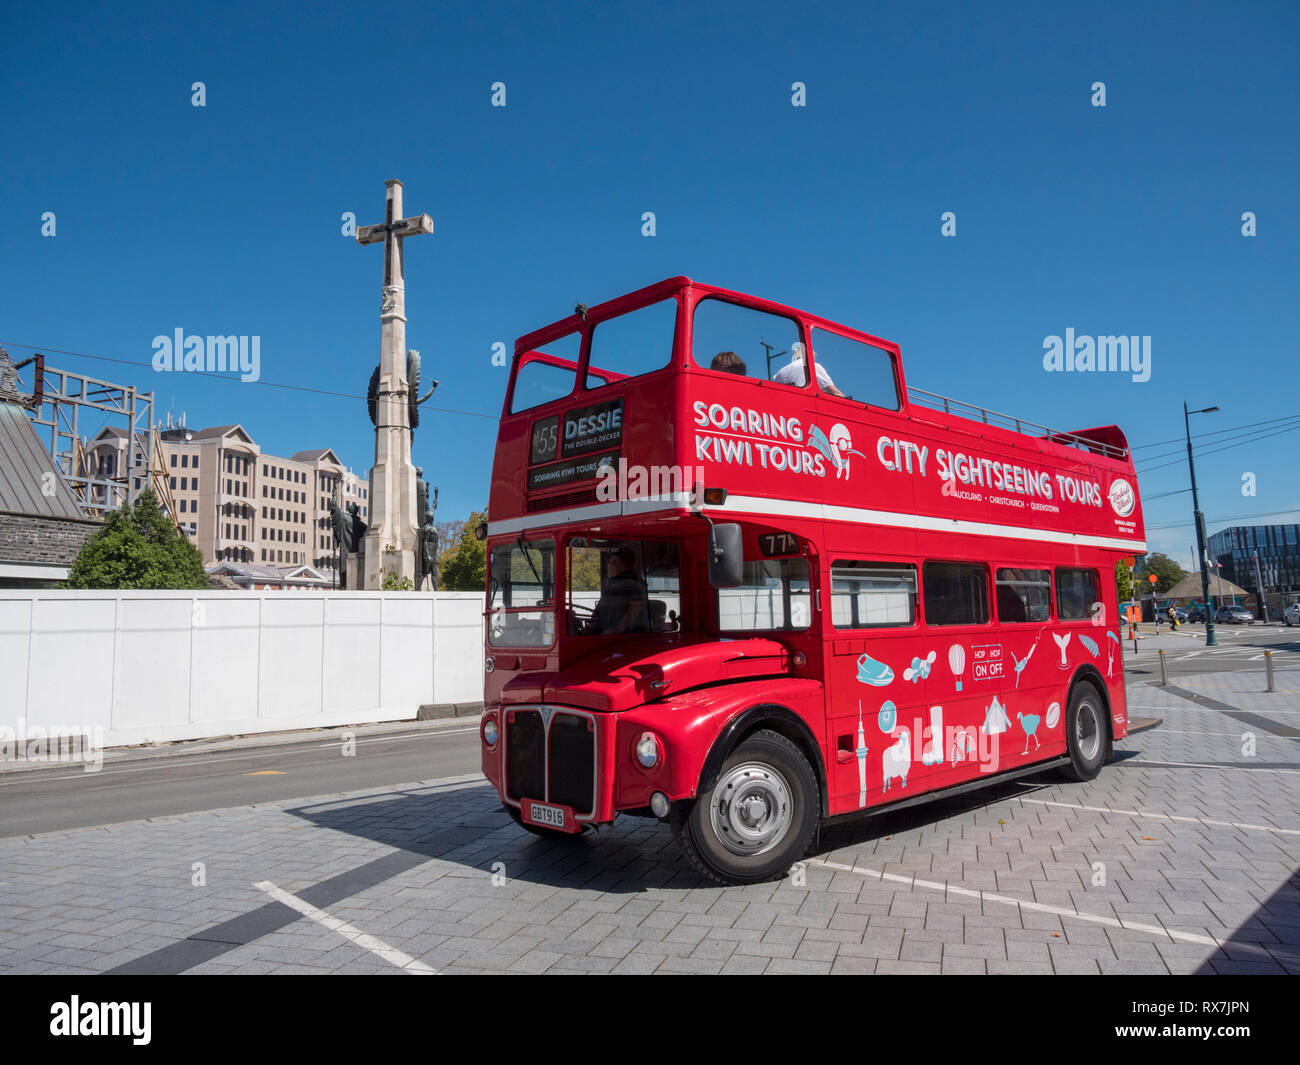 A red double decker bus used for sightseeing tours in Christchurch New Zealand parked waiting for passengers - Stock Image